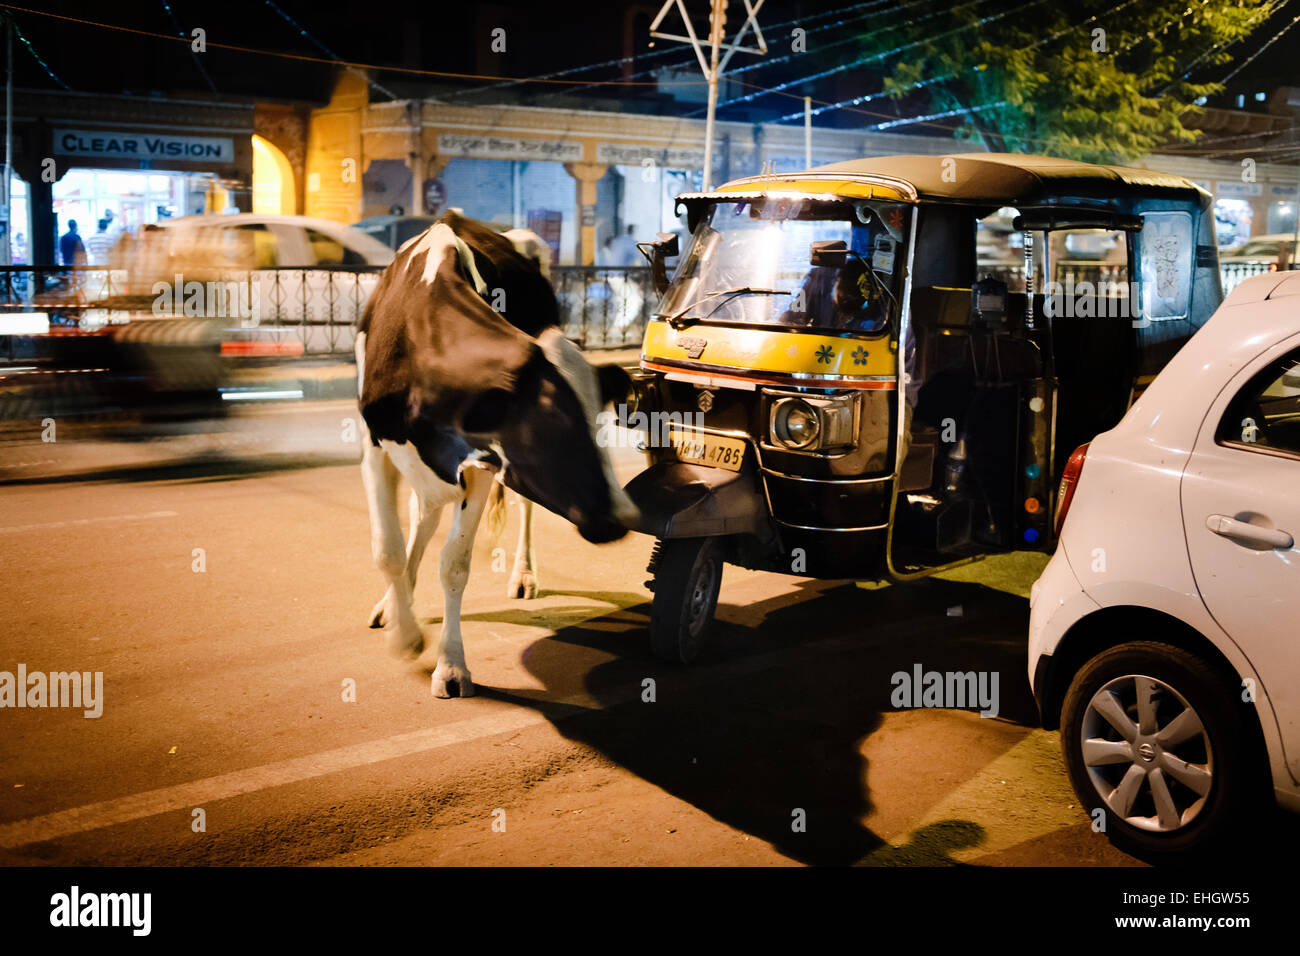 A cow obstructing a Tuk-Tuk taxi within the Pink City, Jaipur. - Stock Image